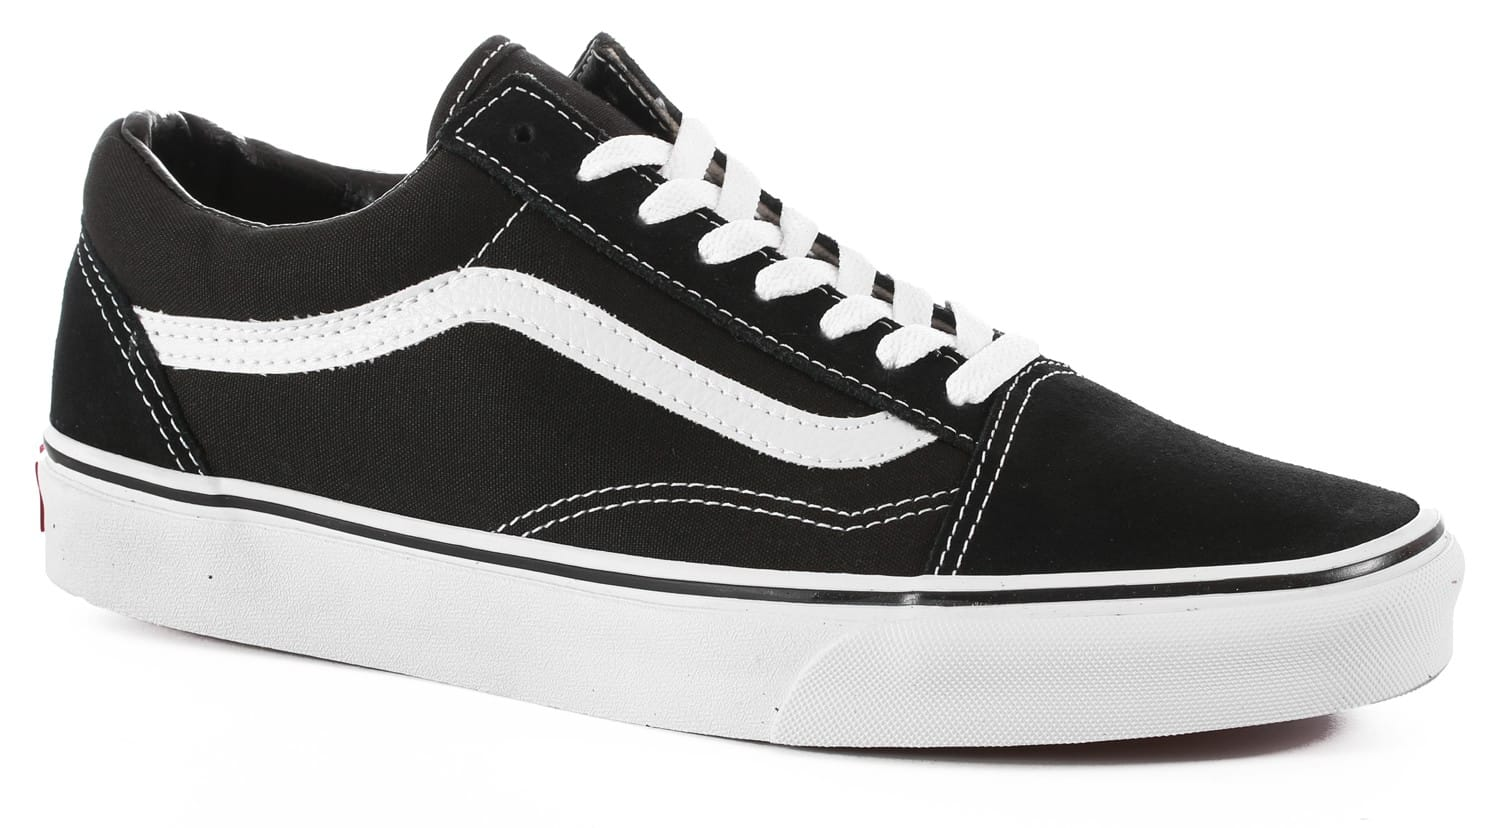 a309b052e6ff Vans Old Skool Skate Shoes - Free Shipping